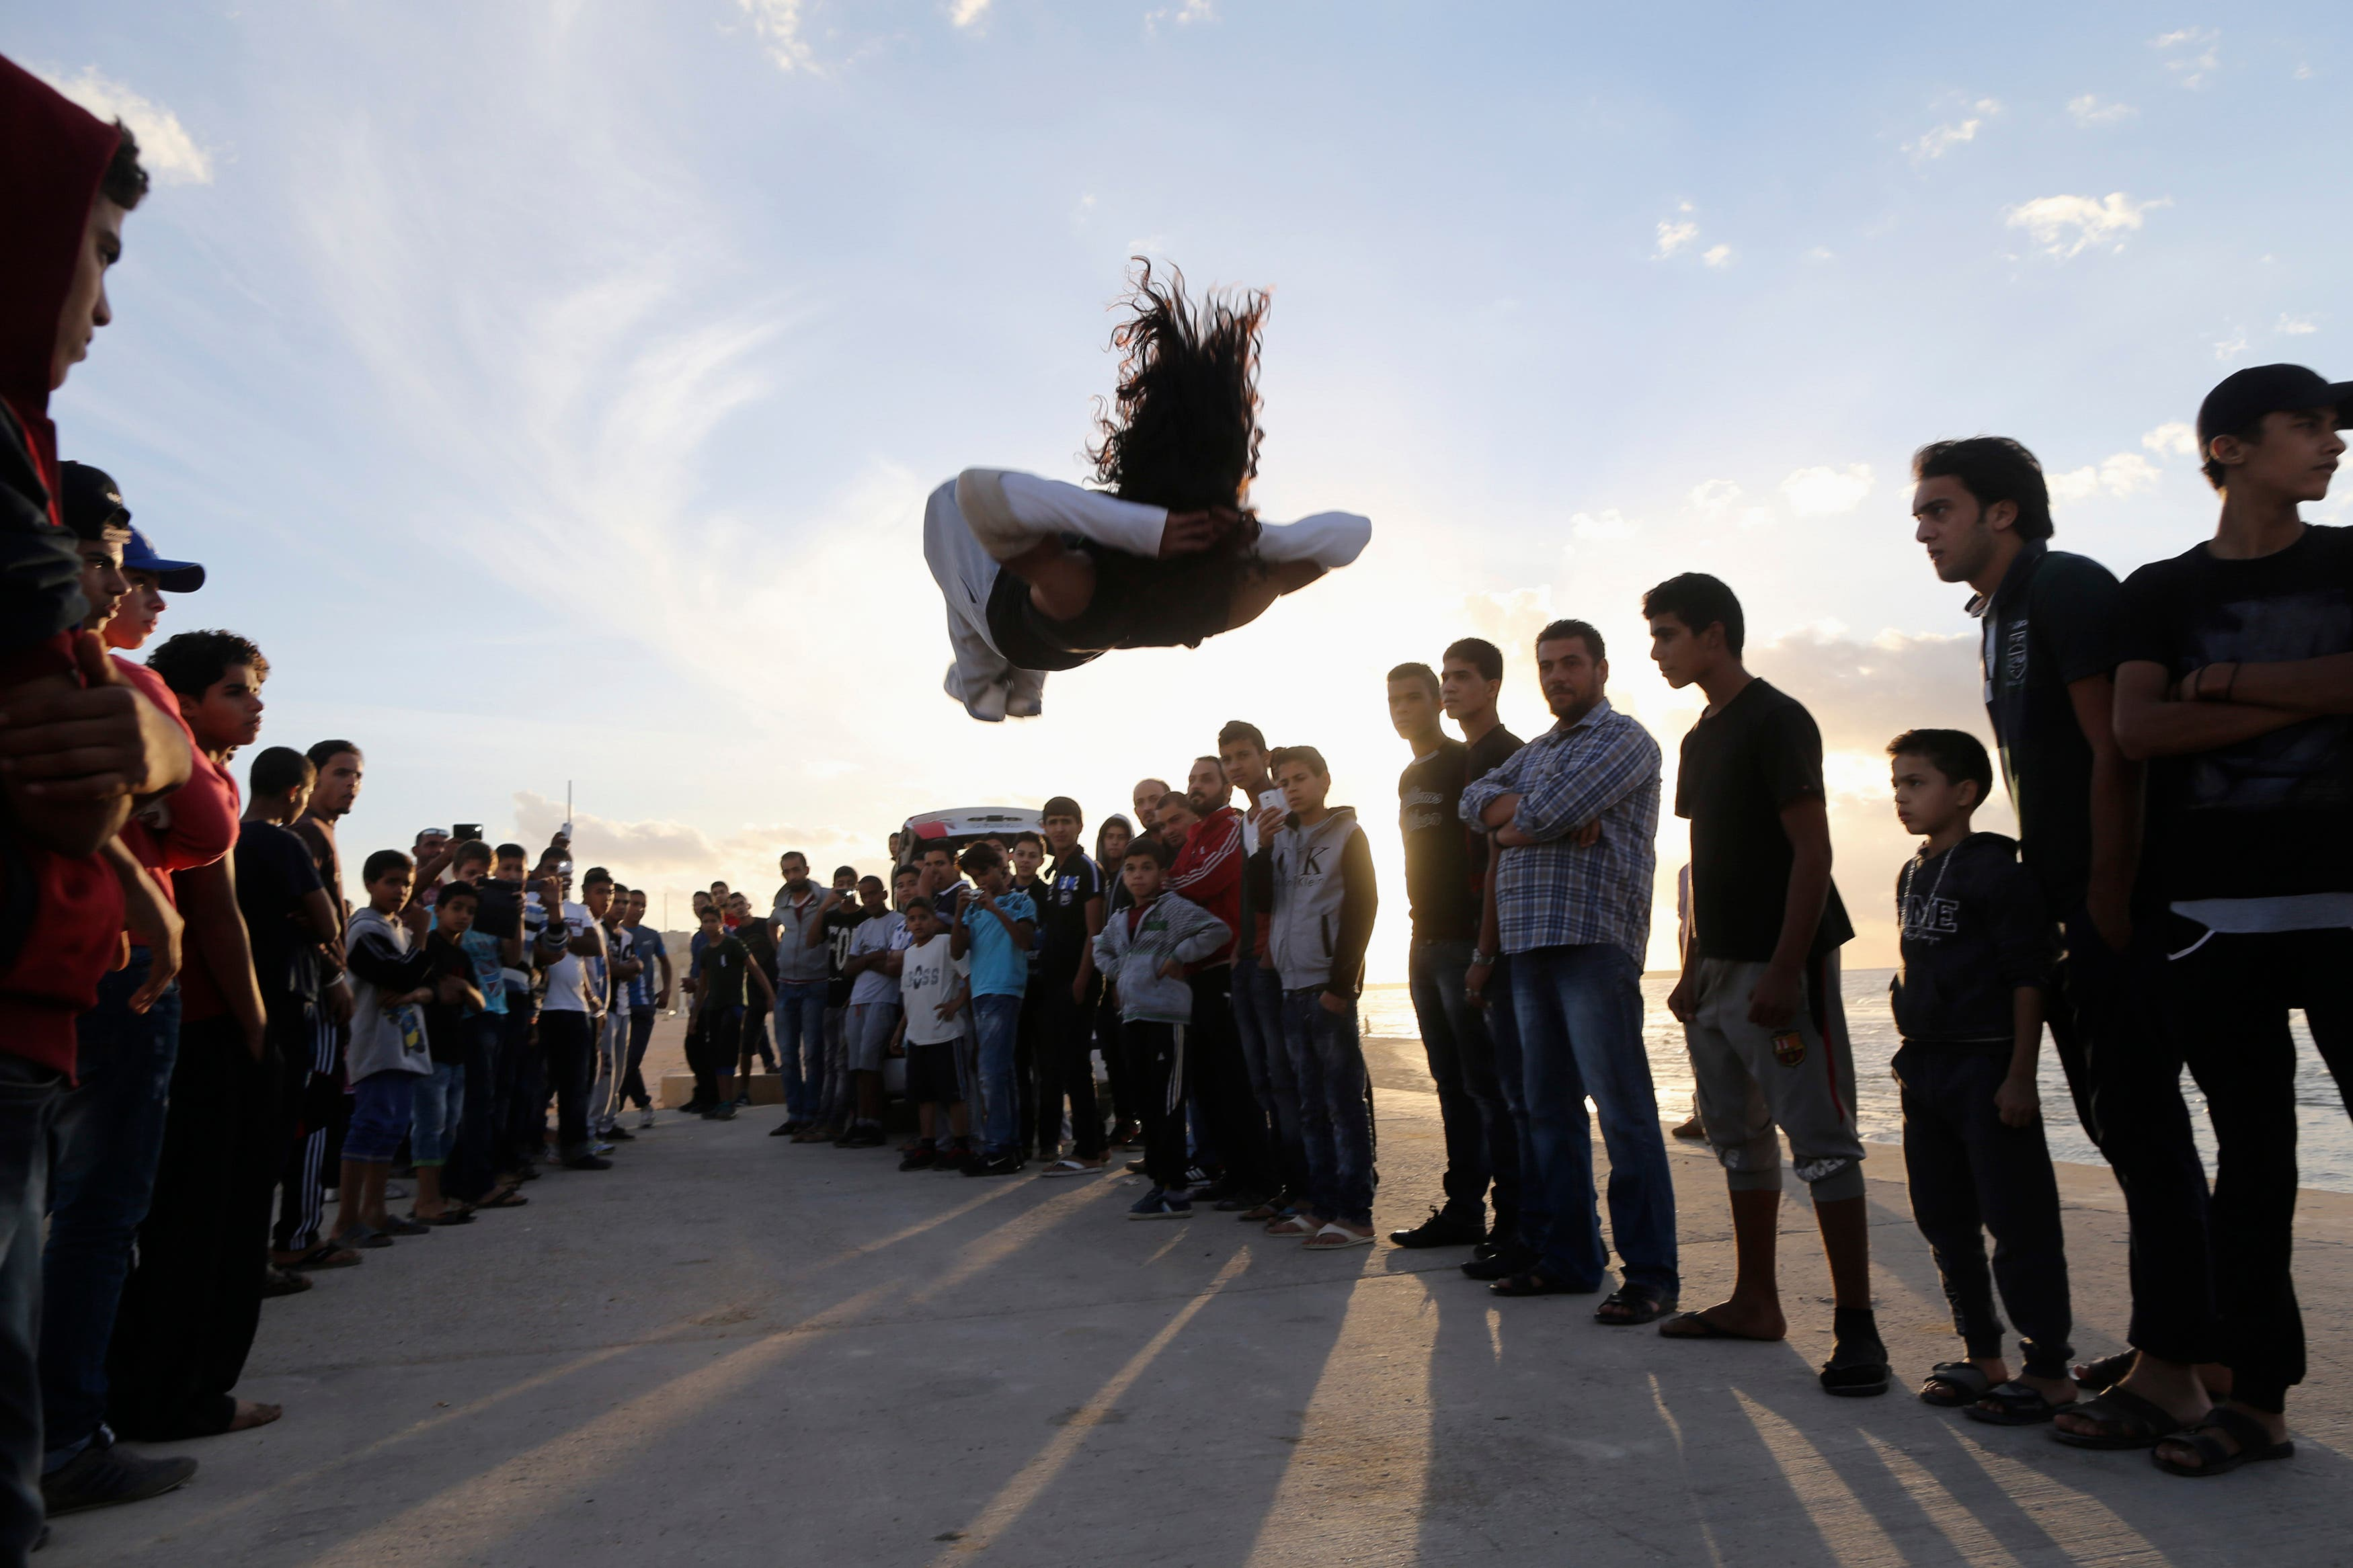 Practicing parkour in Libya